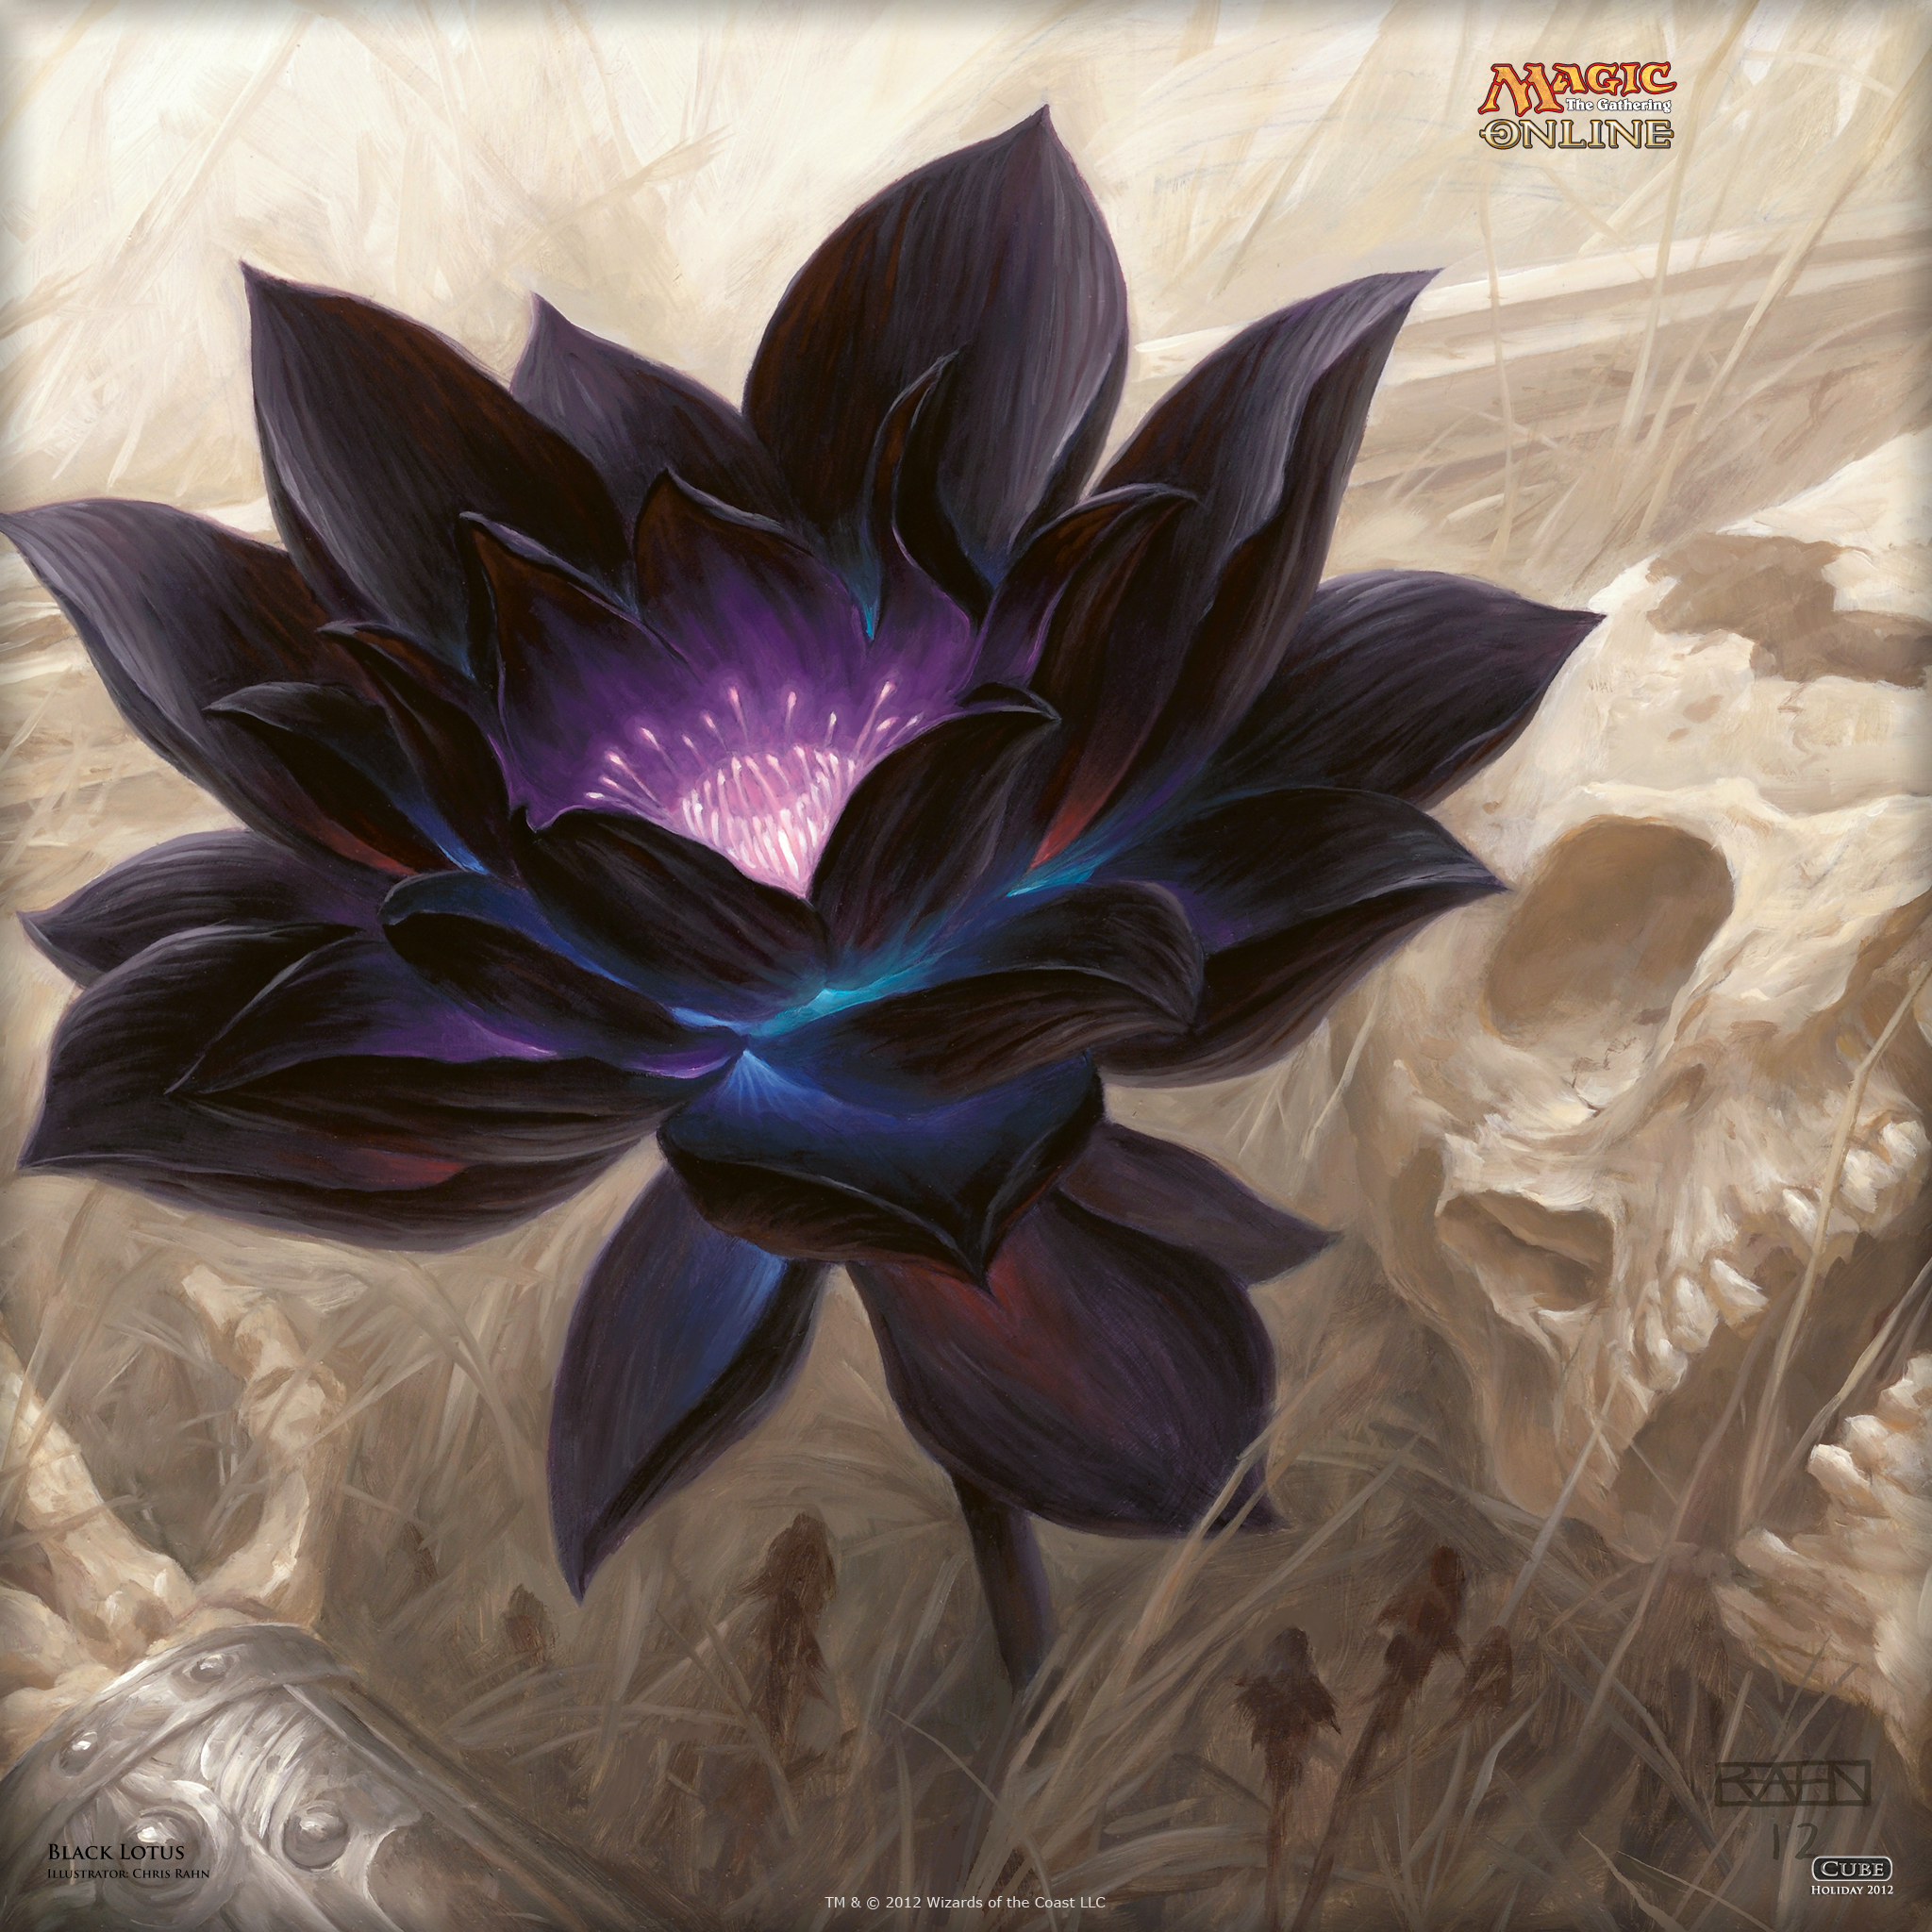 Magic: The Gathering's Black Lotus sells for $166K at auction, doubling its value